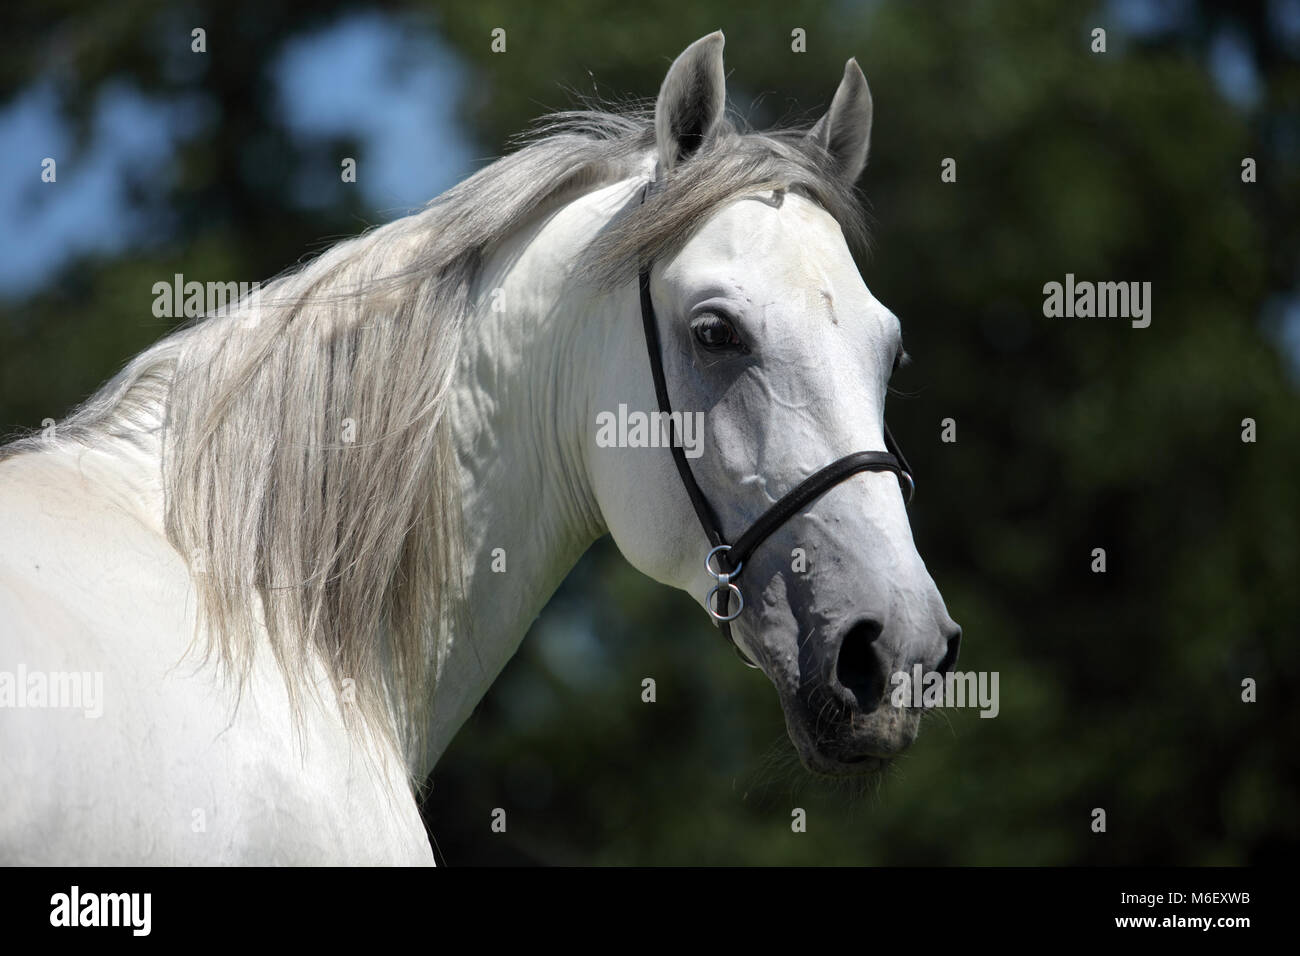 Andalusian Horse White Horse Portrait Spain Europe Stock Photo Alamy